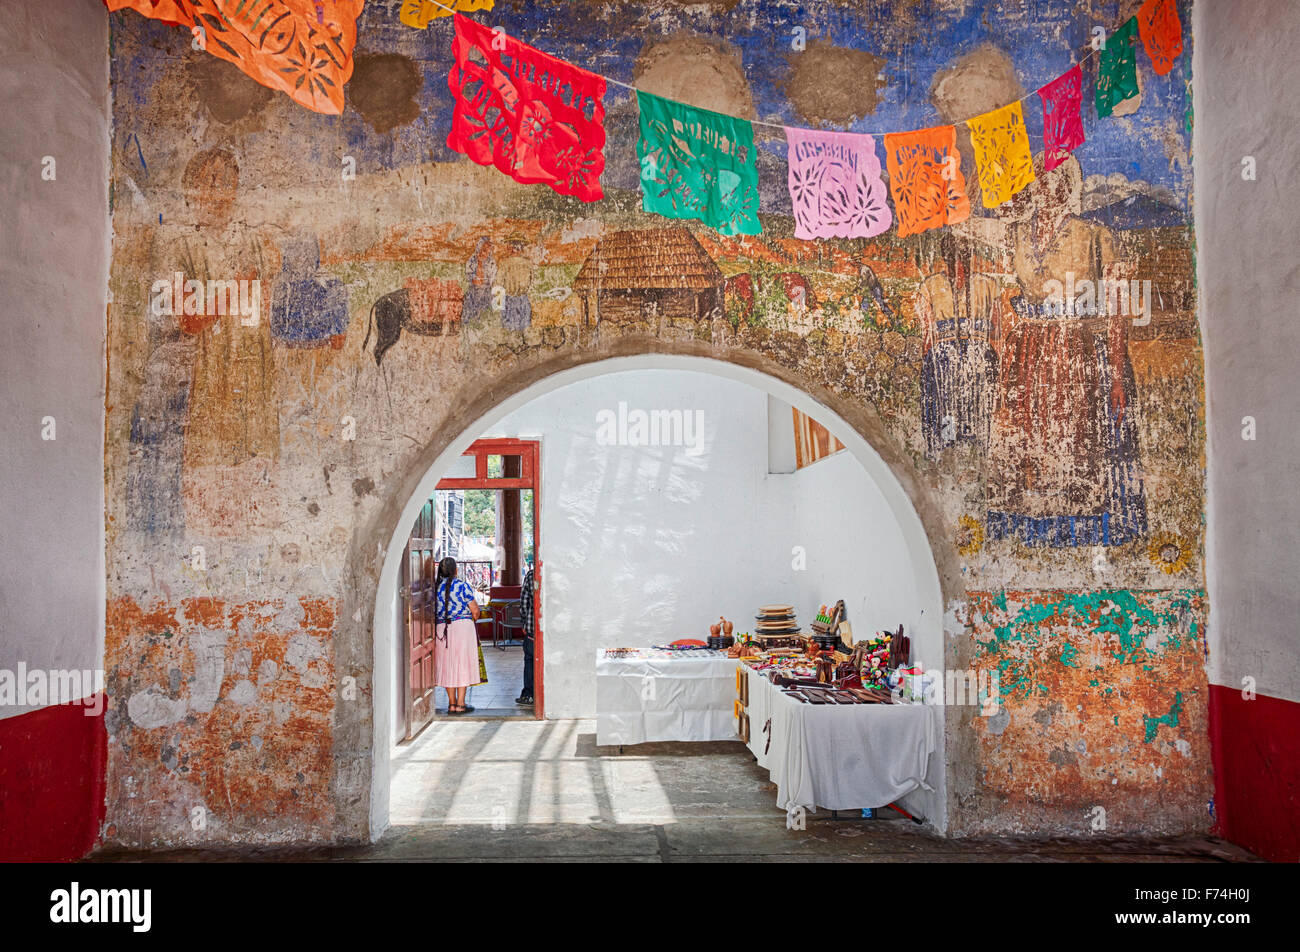 Faded mural and archway in the town known for its guitar makers, Paracho, Michoacan, Mexico. - Stock Image